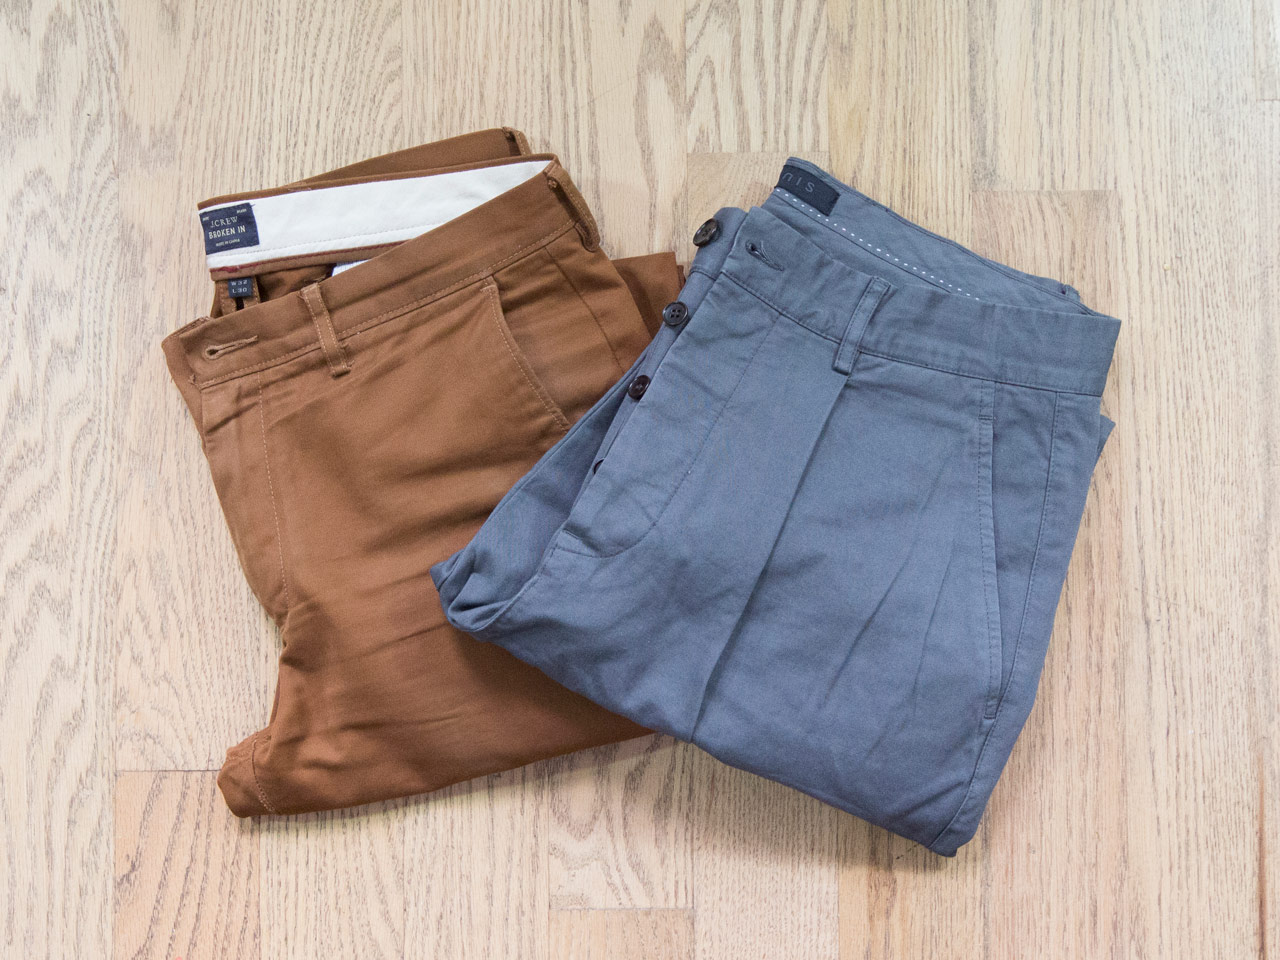 effortless essentials minimalist wardrobe - casual chinos